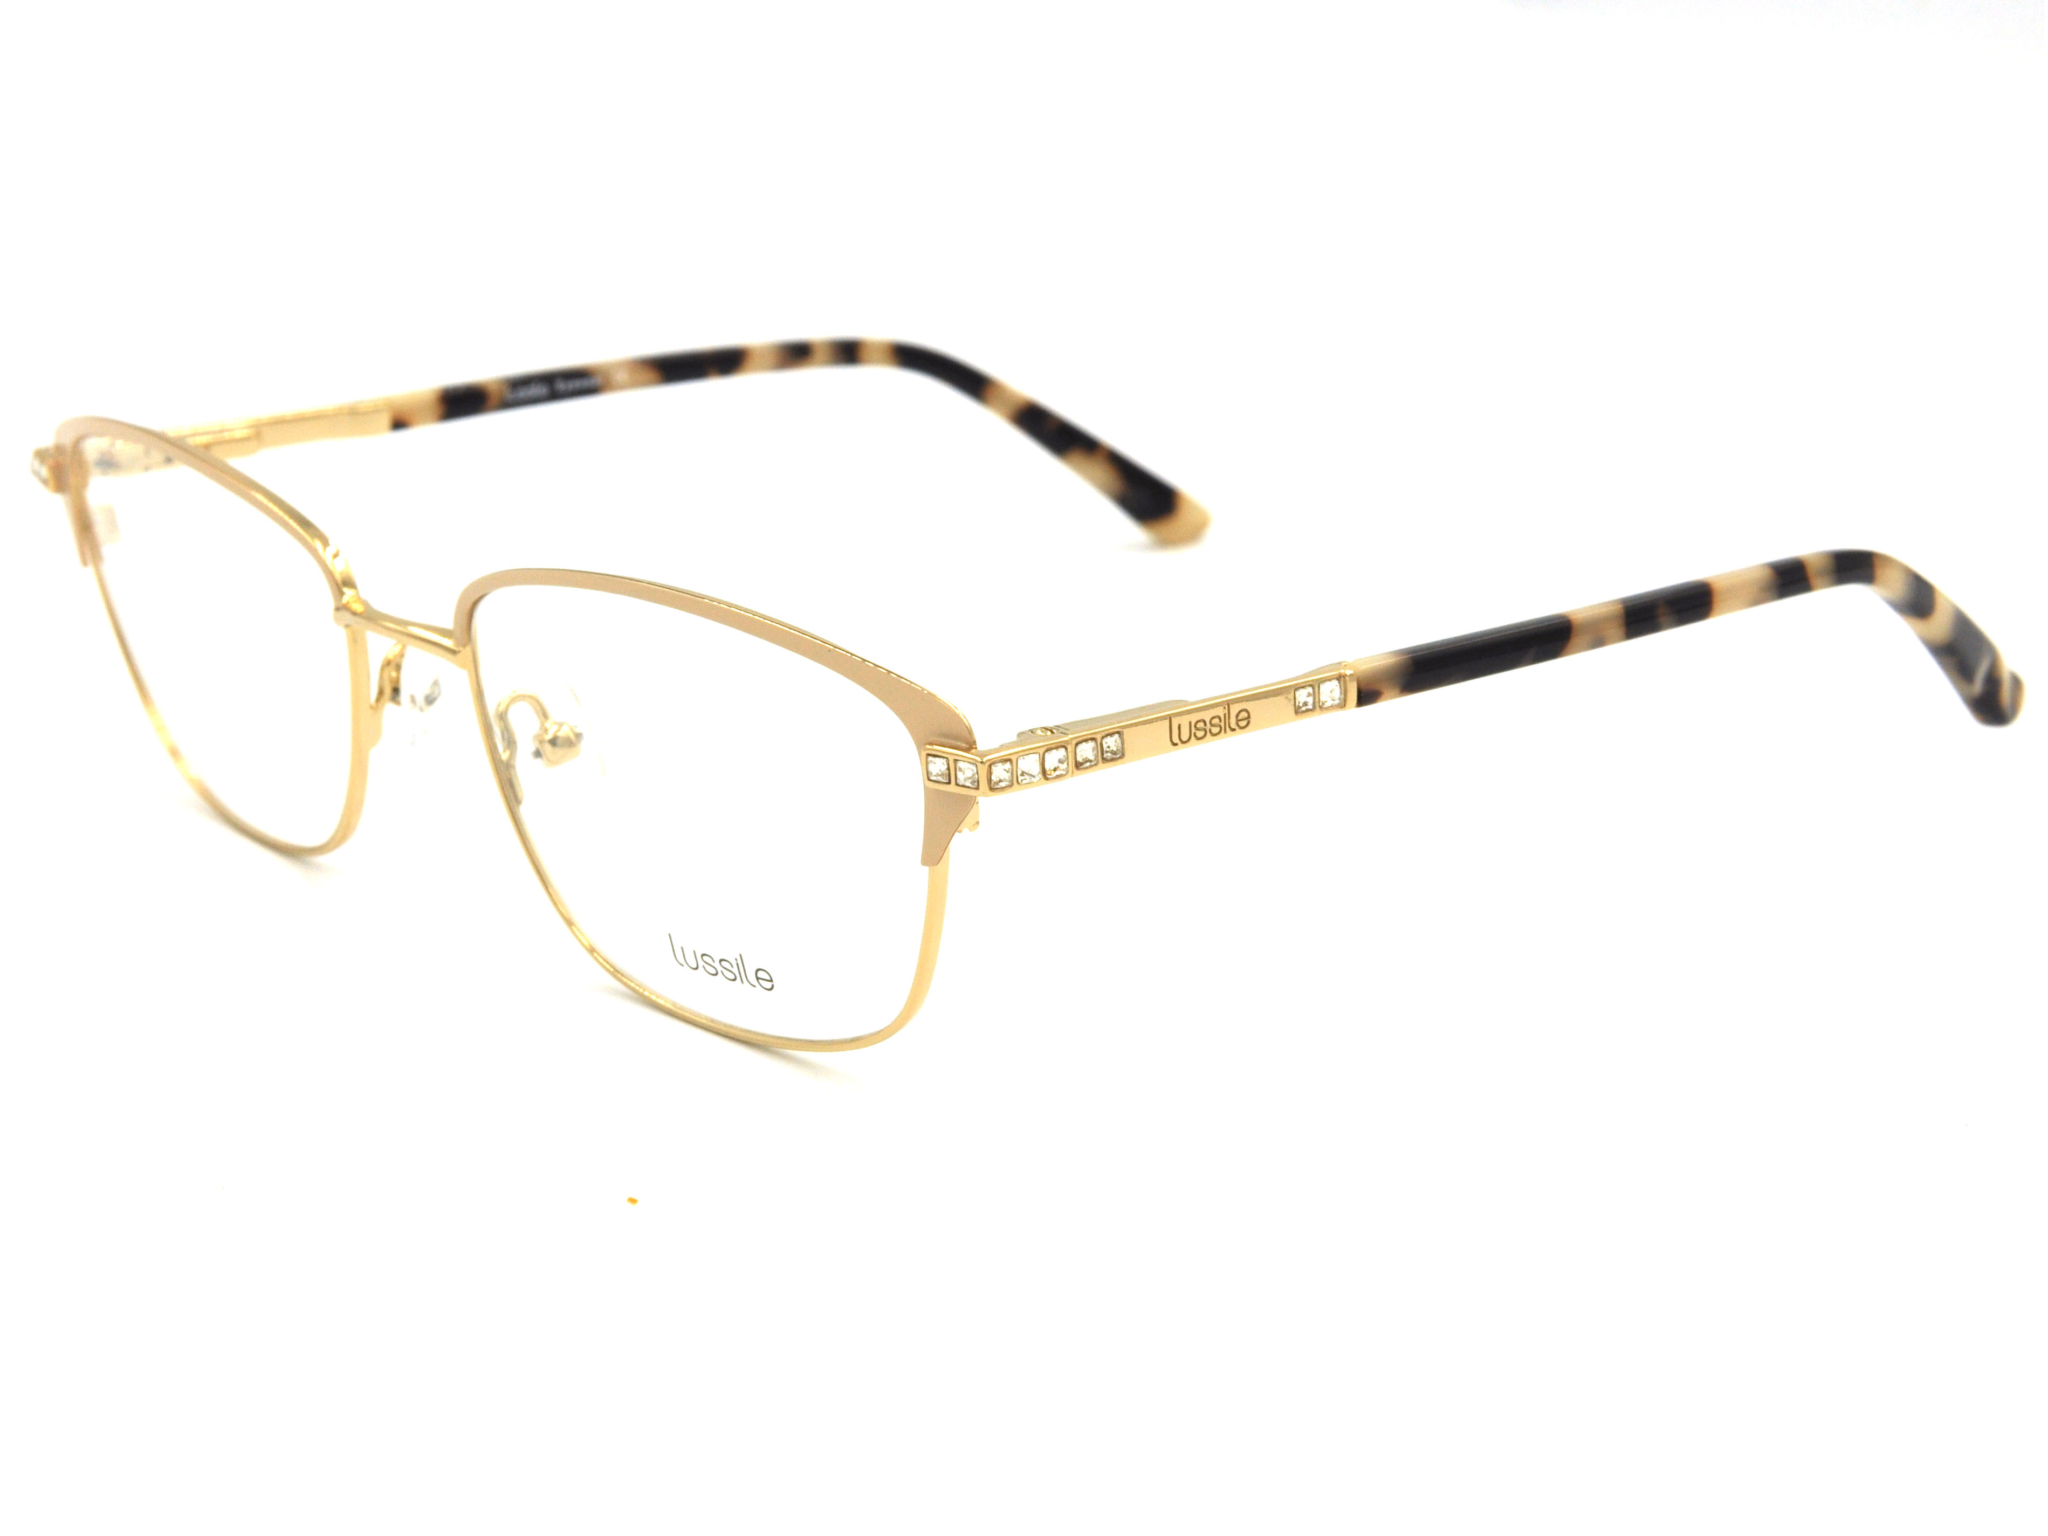 LUSSILE LS32217 LJ05 Prescription Glasses 2020